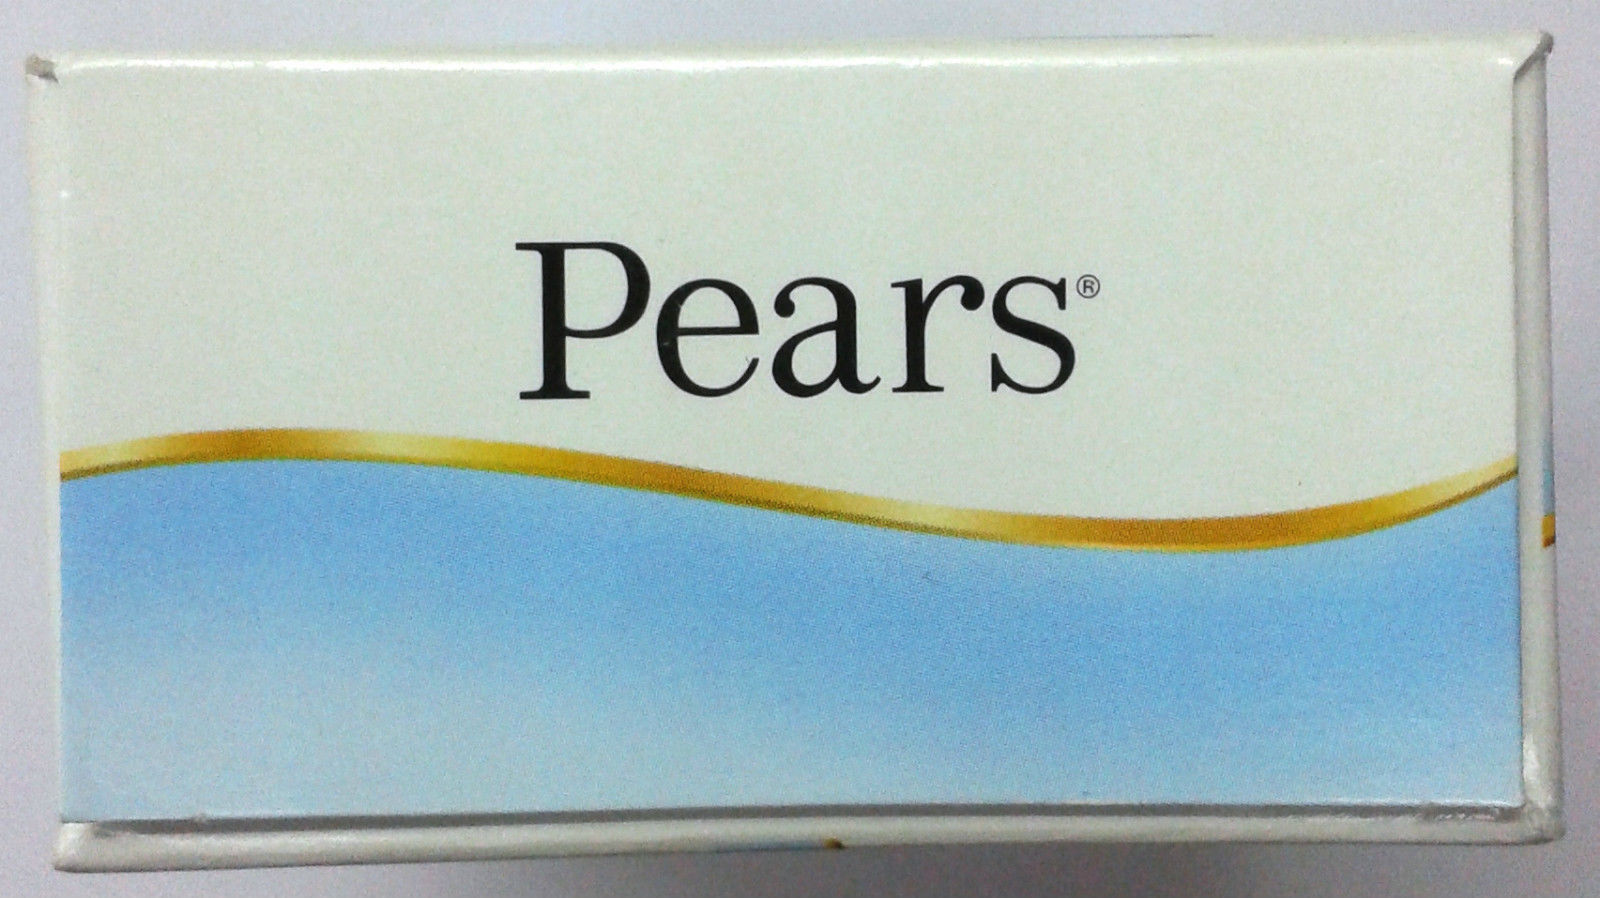 Pears Soap Soft & Fresh  75 GM  With Glycerin & Mint Extracts  Pears